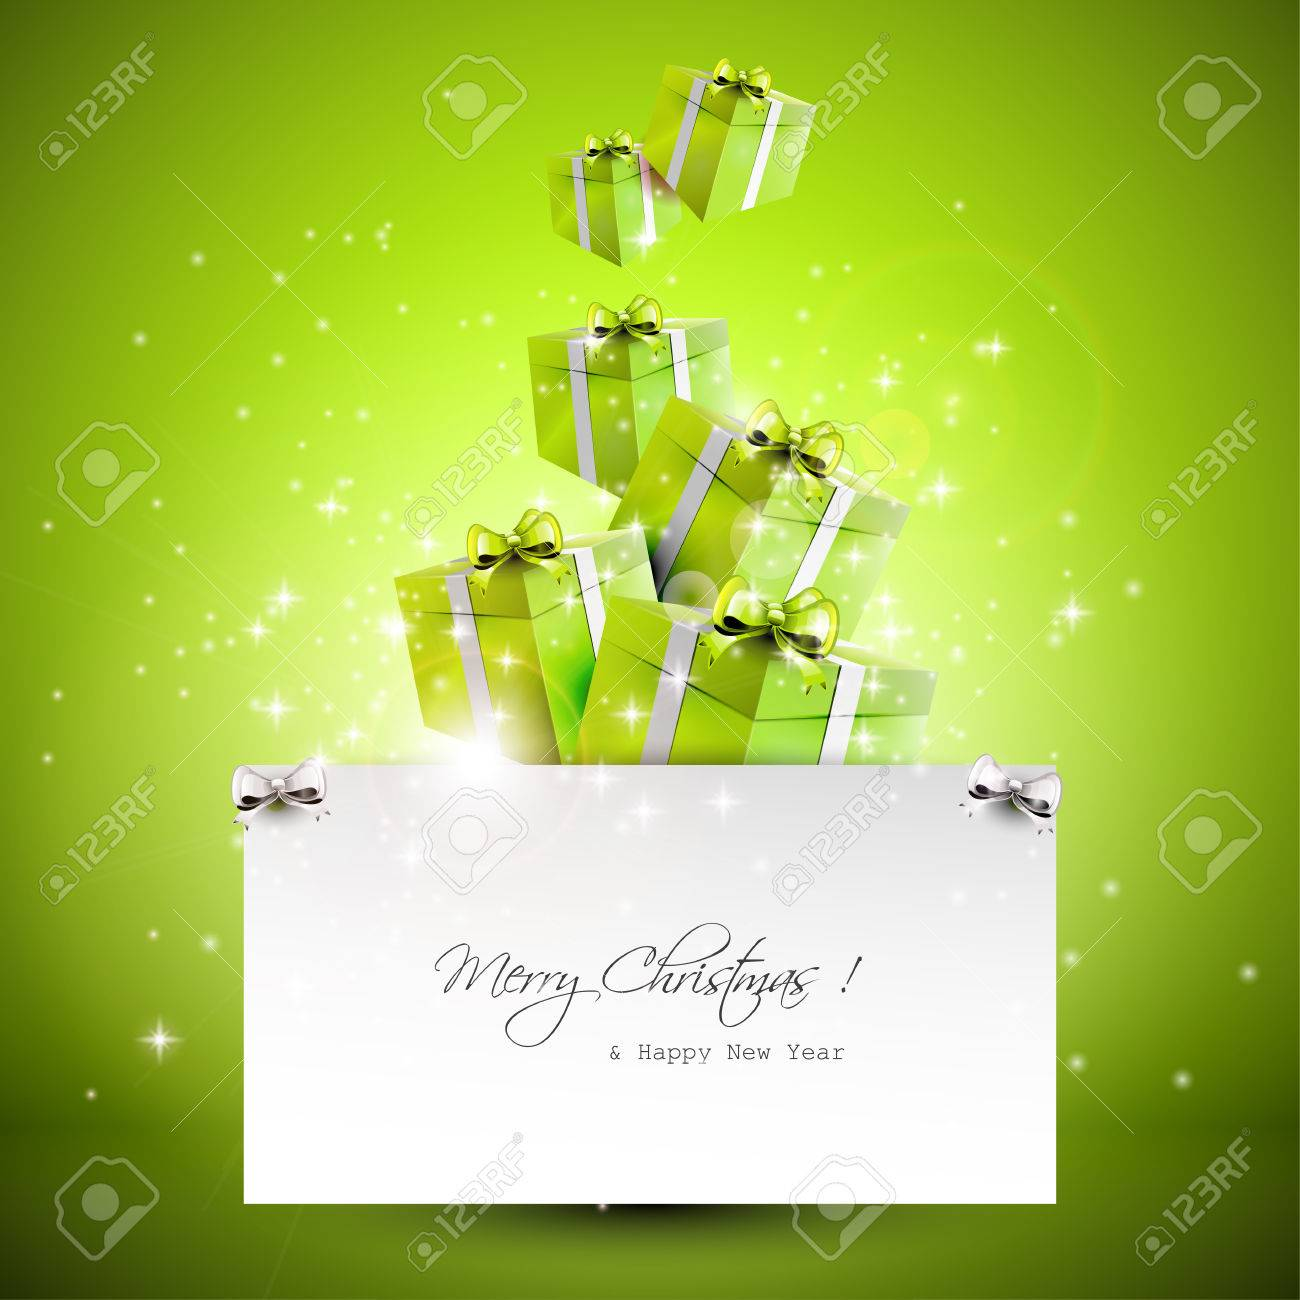 Flying gift boxes and paper with place for text - Christmas background Stock Vector - 22561674